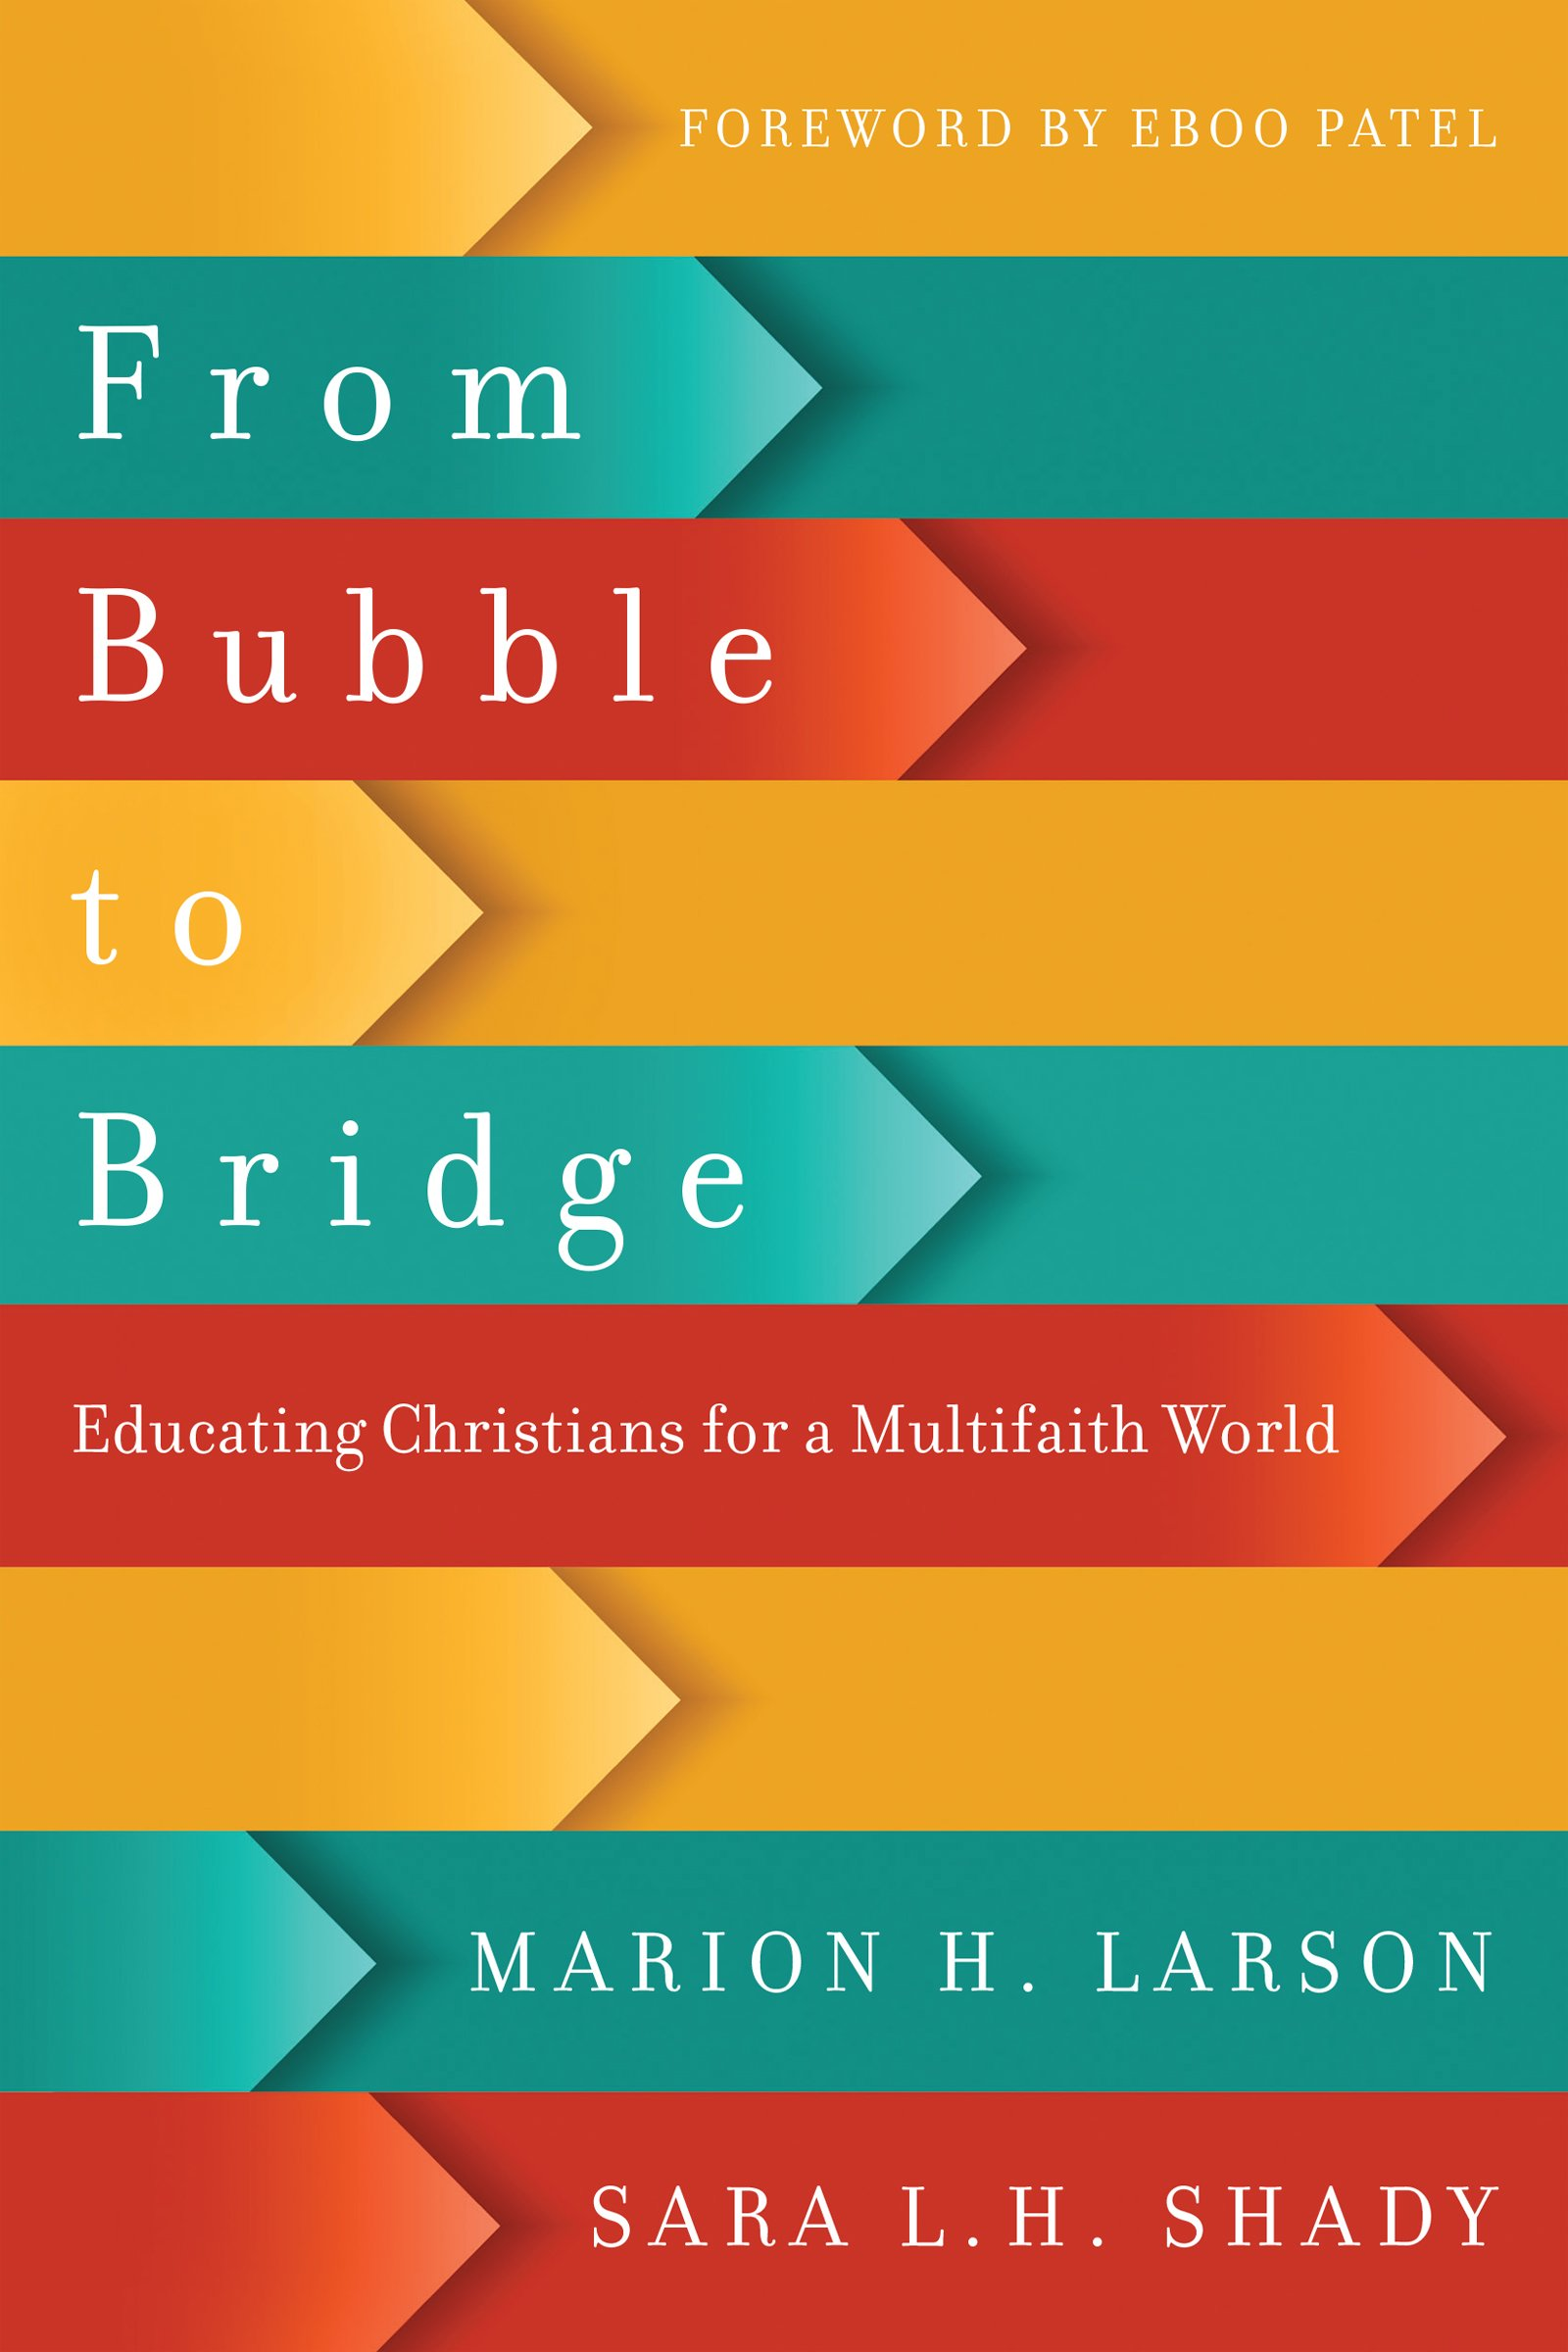 From bubble to bridge educating christians for a multifaith world from bubble to bridge educating christians for a multifaith world marion h larson sara l h shady eboo patel 9780830851560 amazon books gamestrikefo Image collections